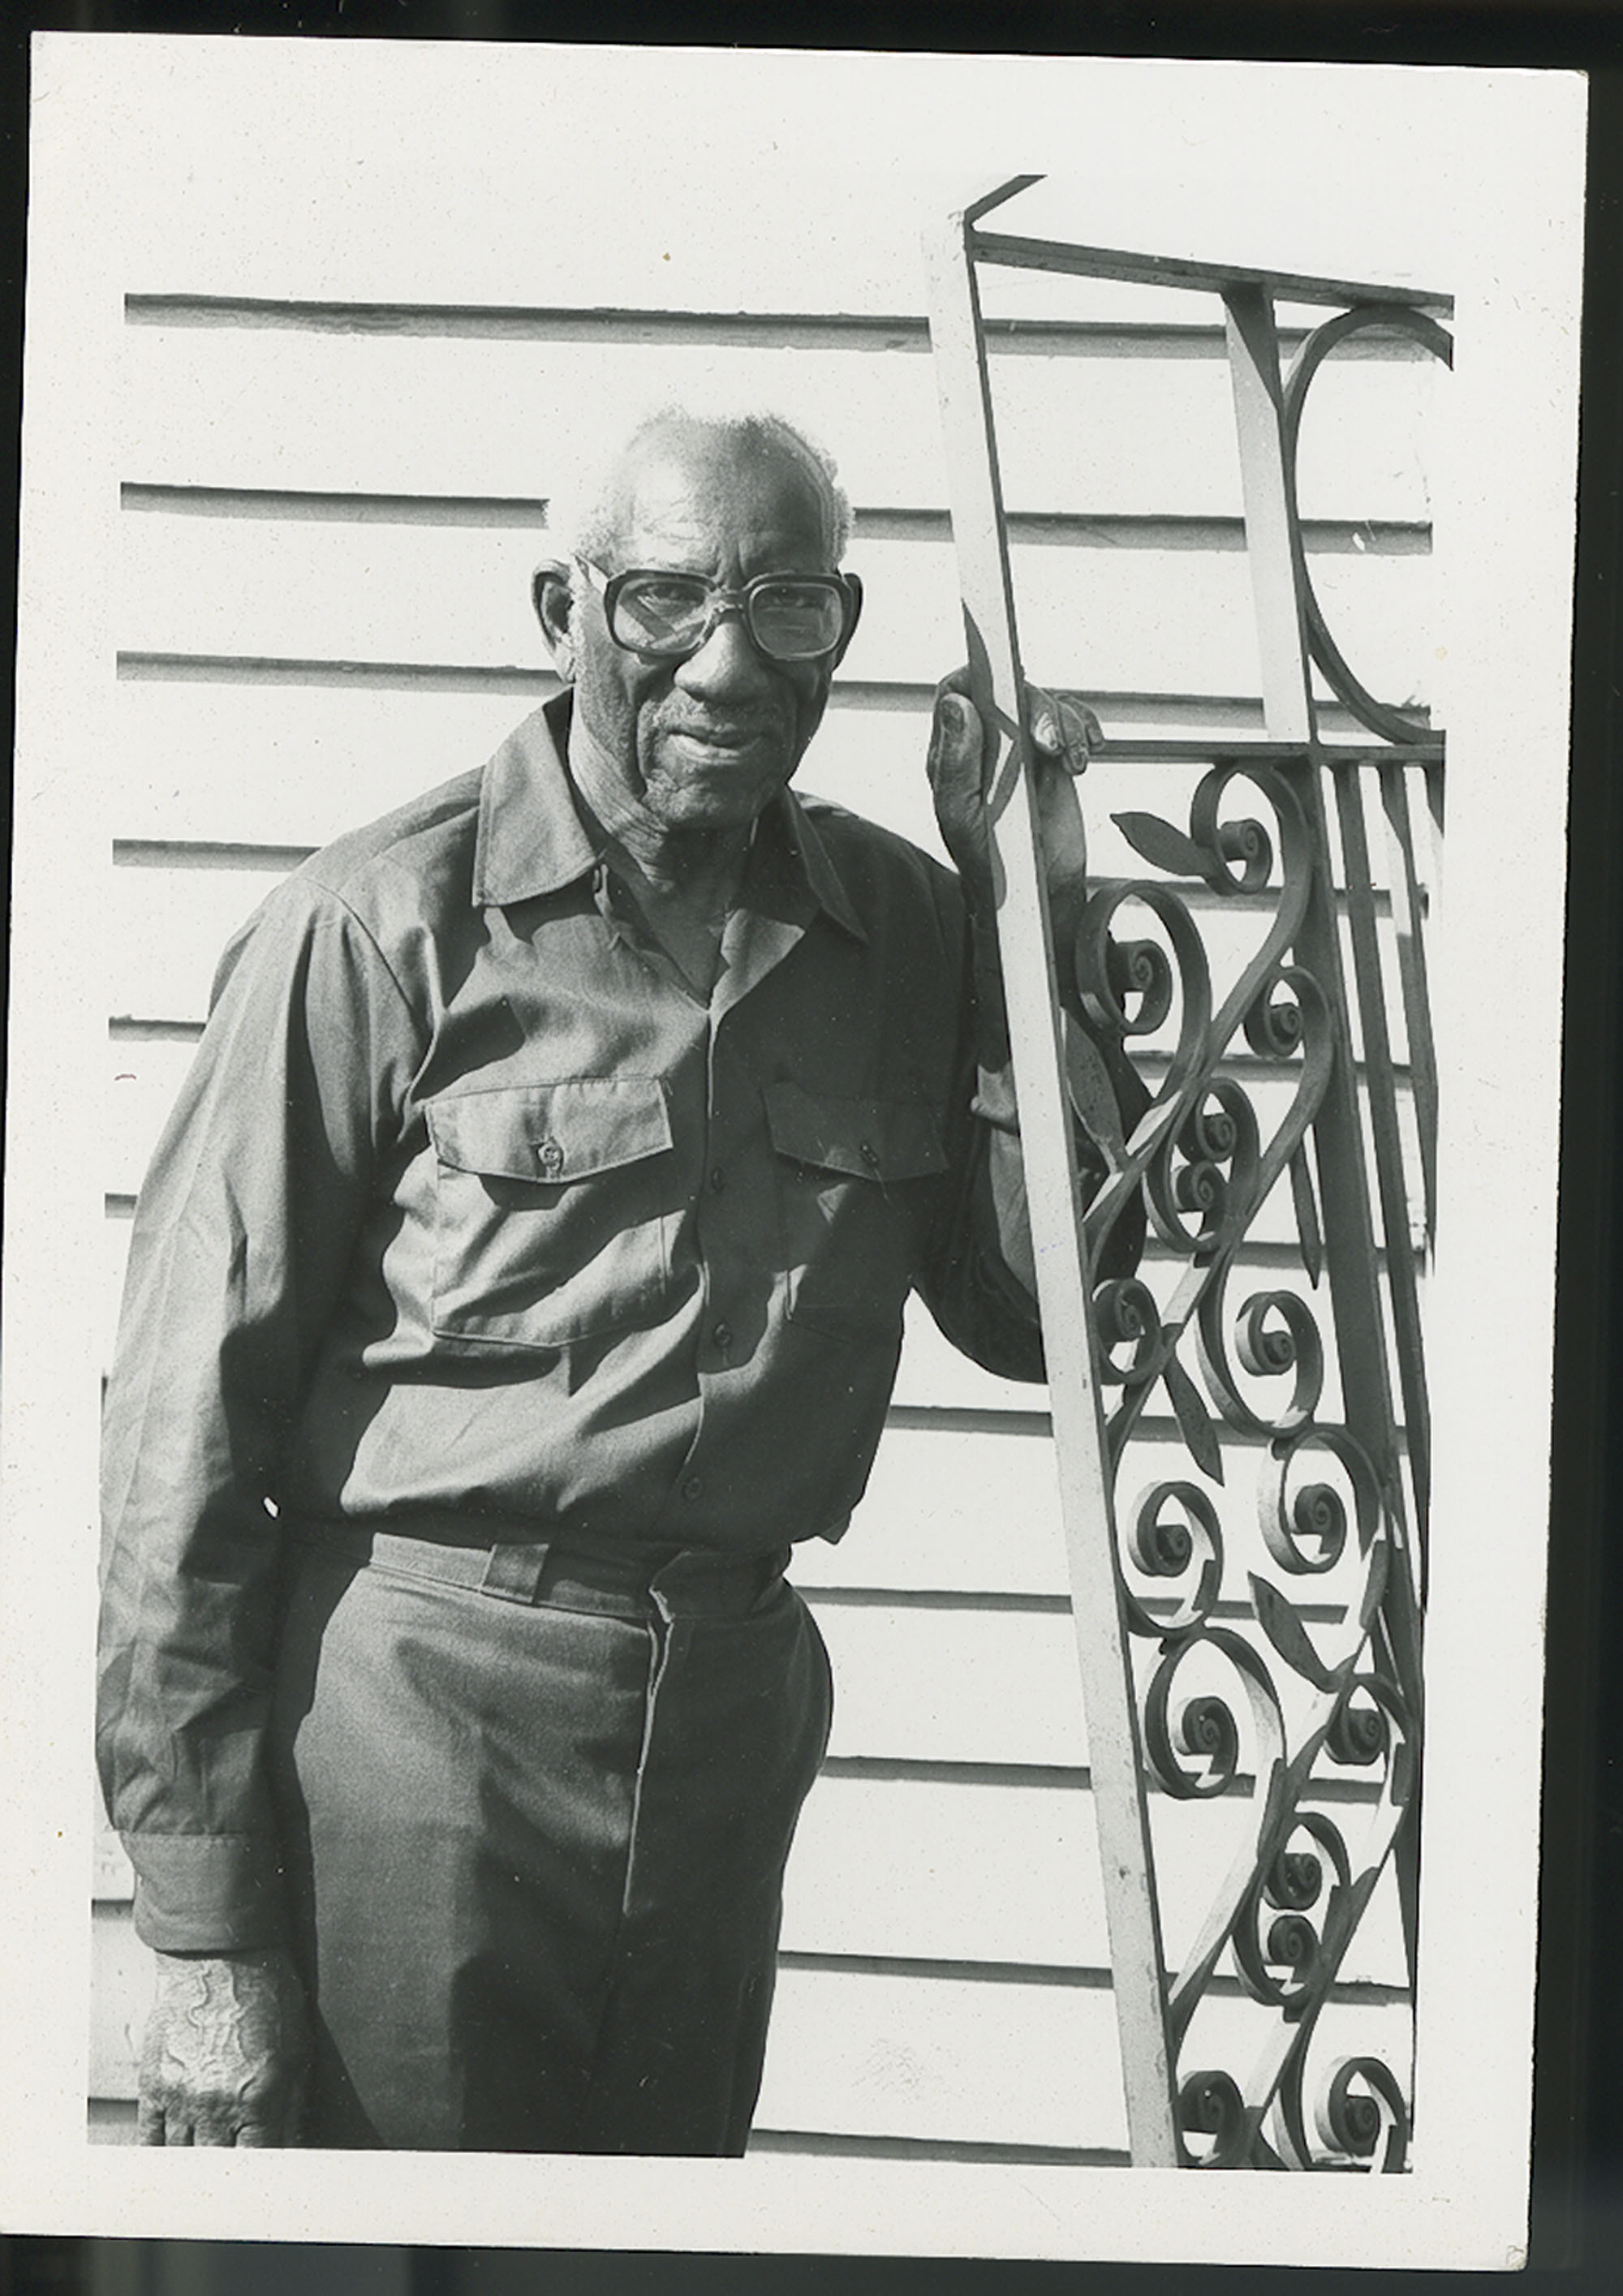 Photograph Philip Simmons standing next to a gate.